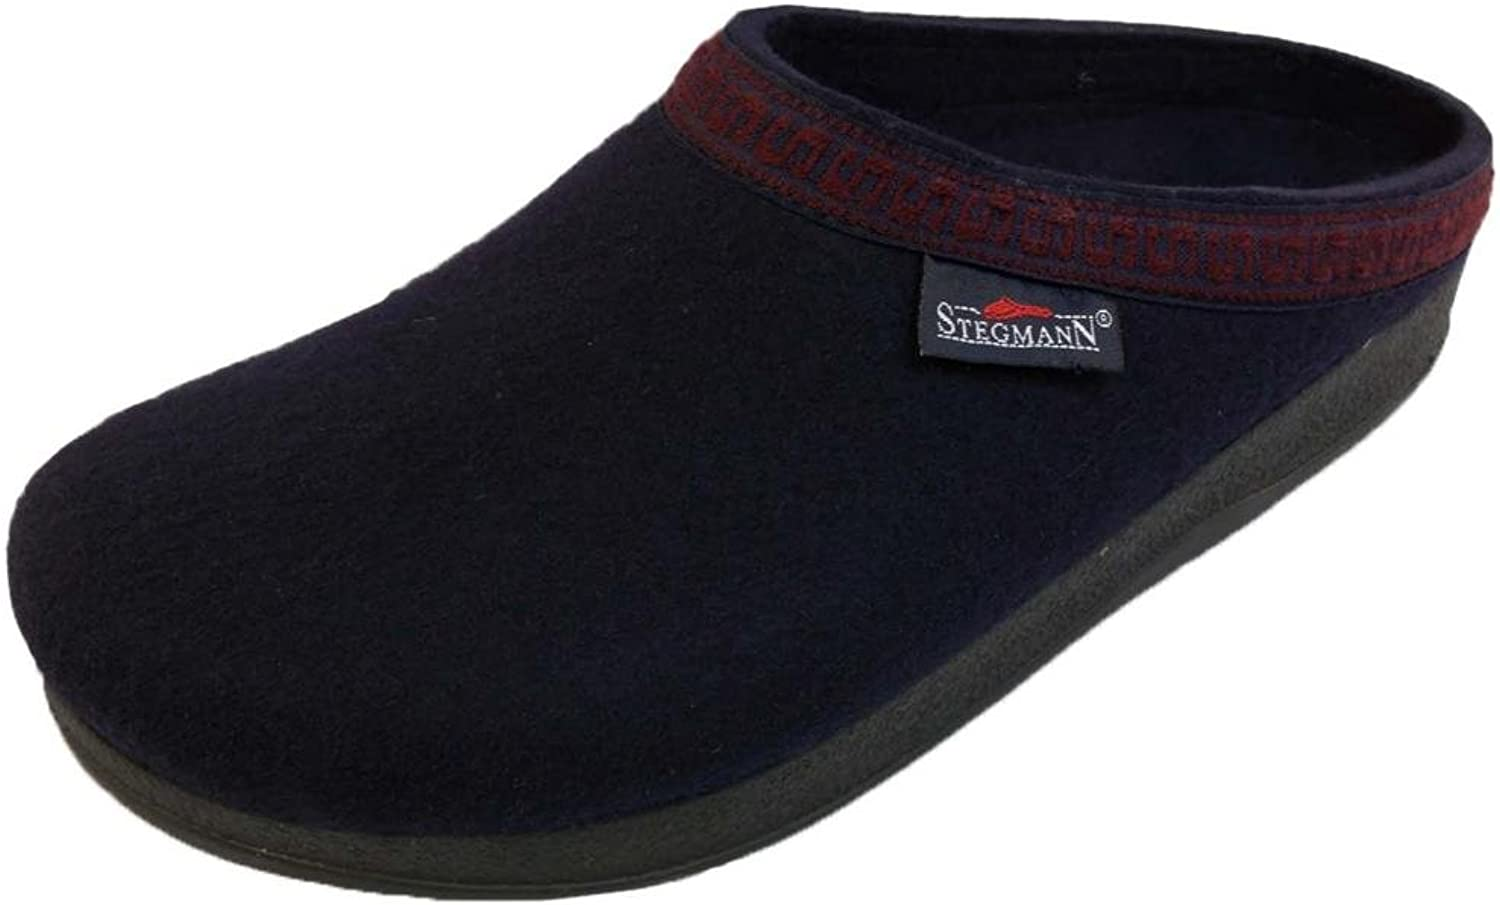 Stegmann Men's Wool Clog with Poly Sole, Navy